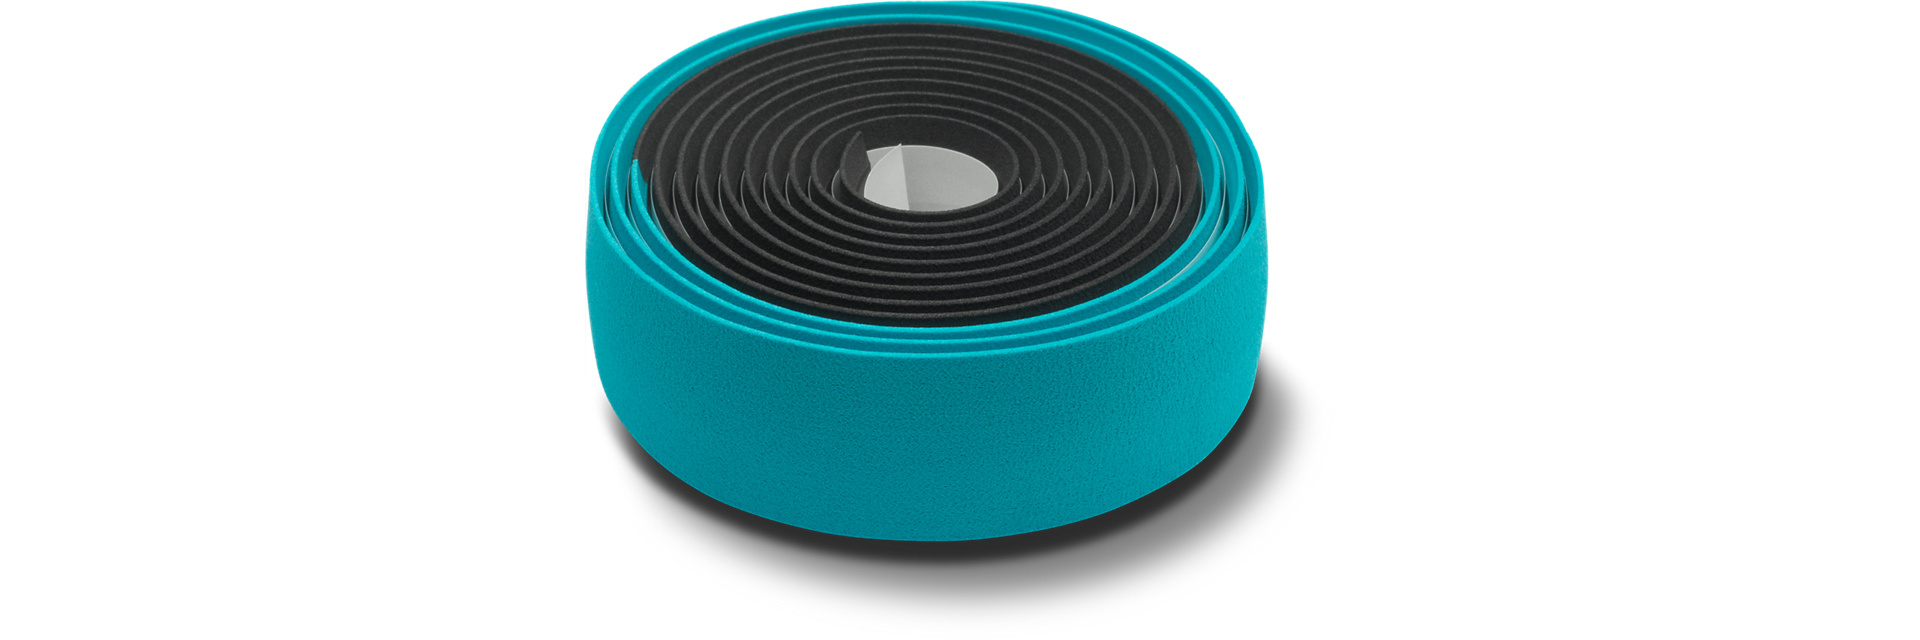 S WRAP ROUBAIX TAPE - Nice Blue/Black